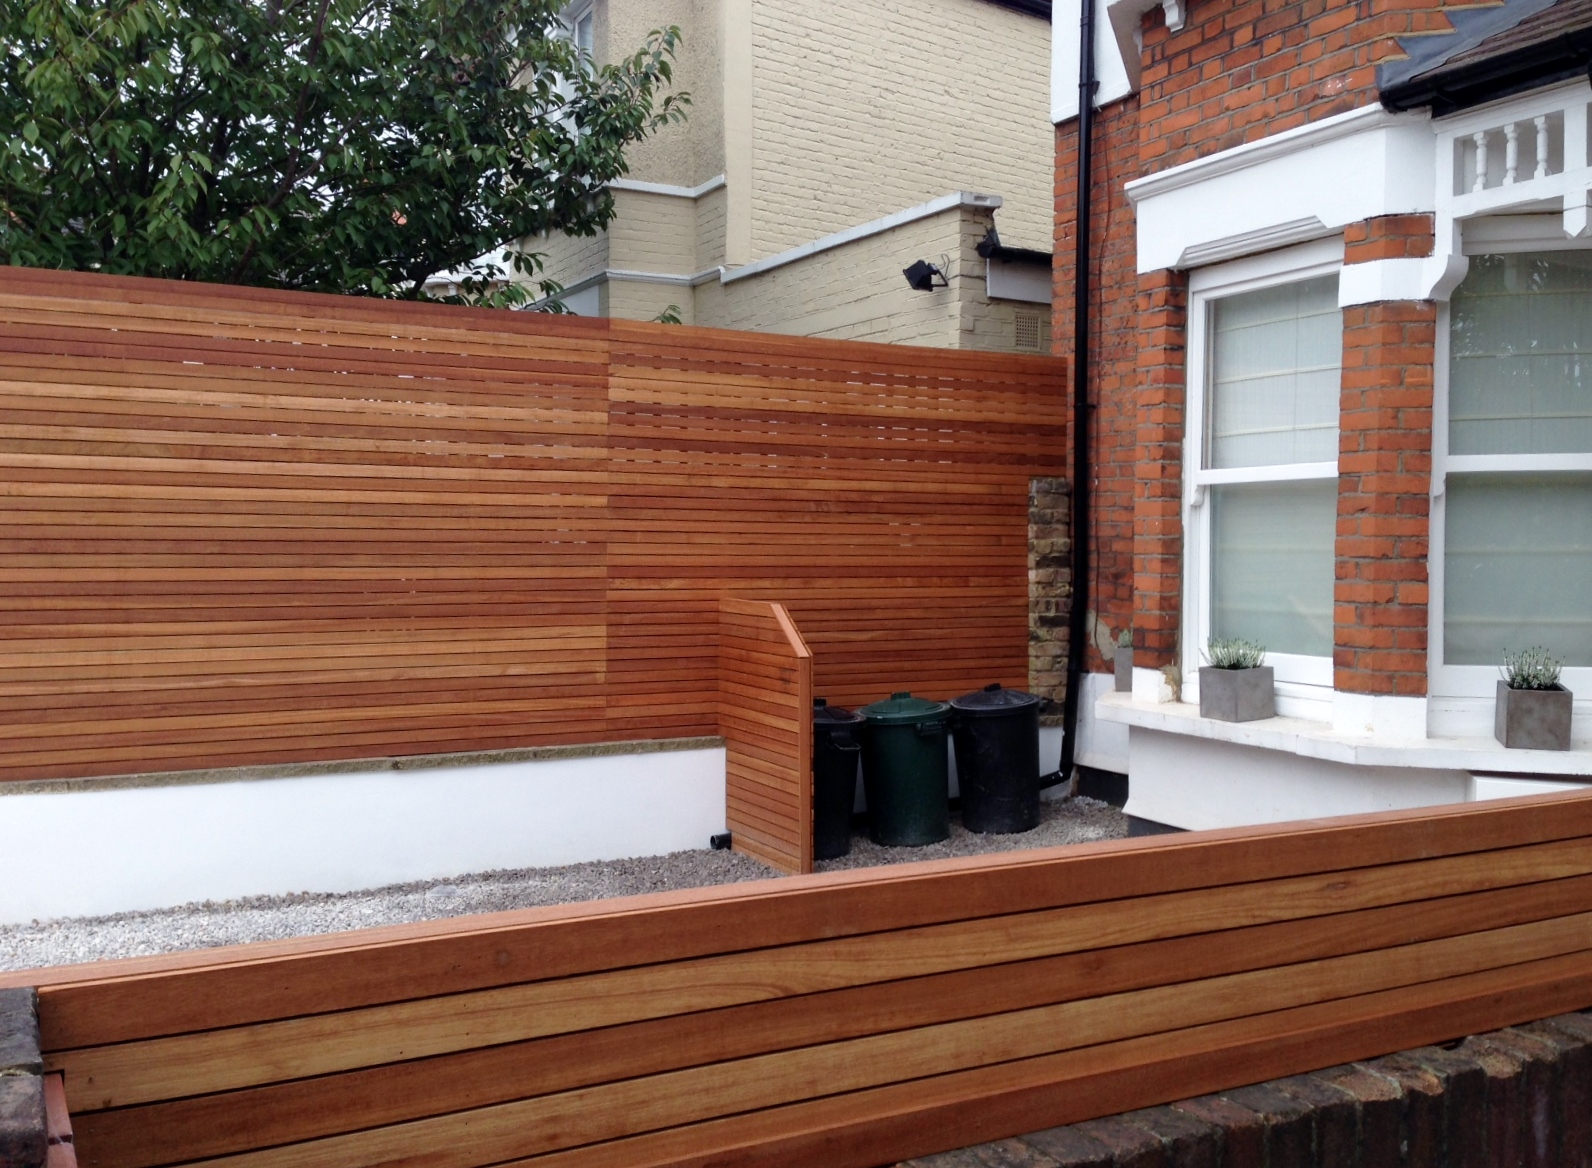 front garden drivewat gravel travertine paving path hardwood privacy screen trellis tooting london (17)